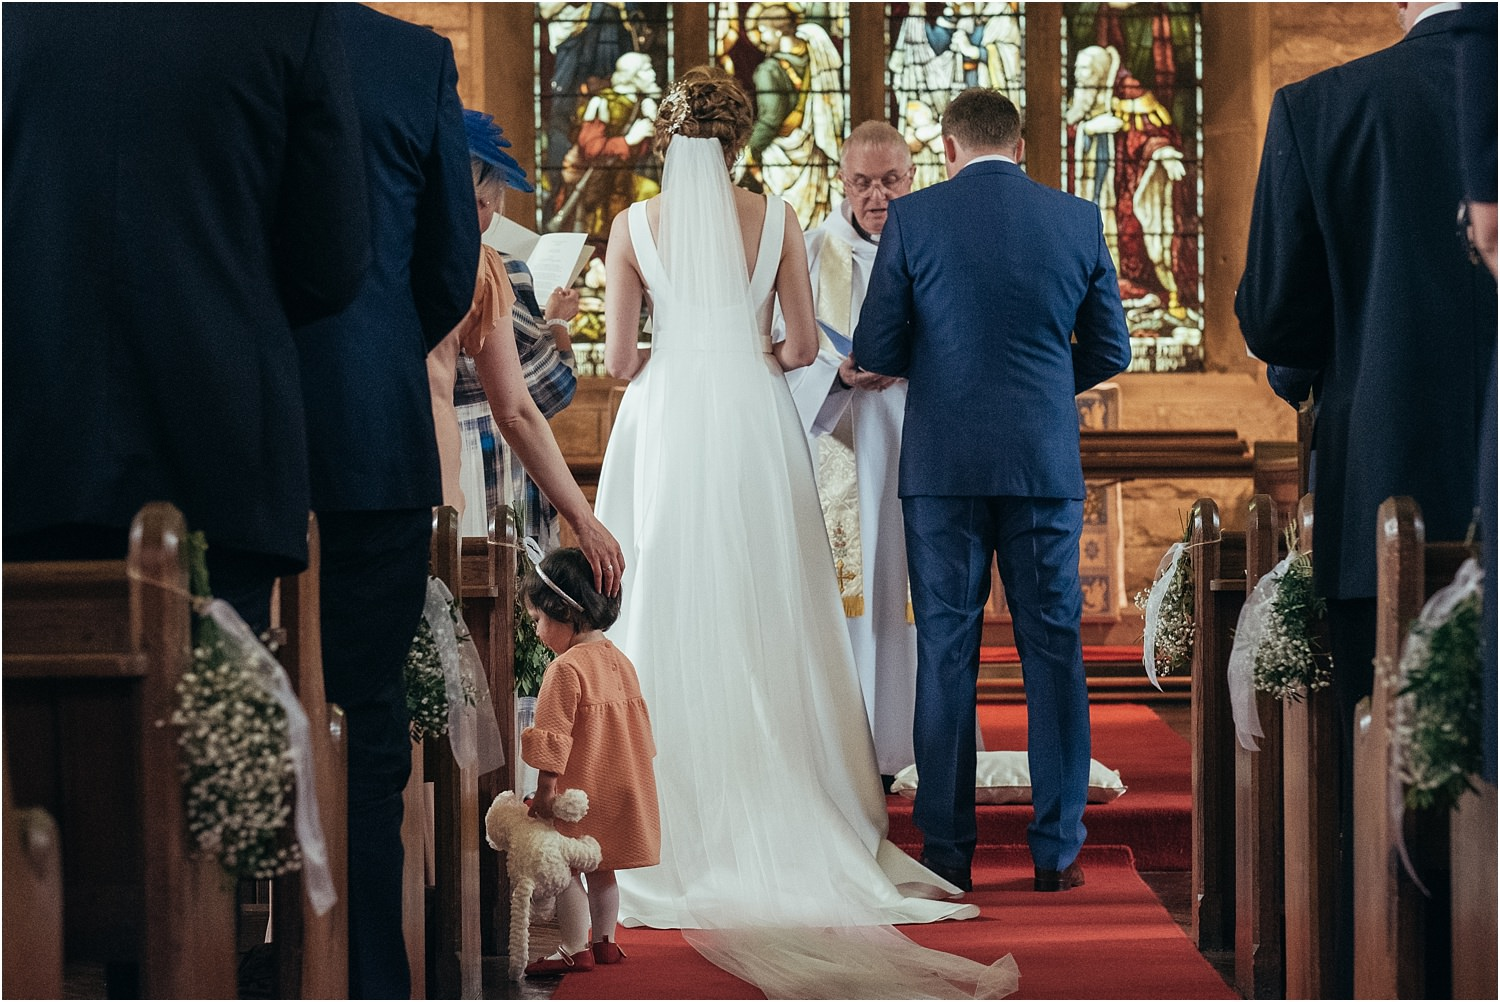 Rear view of bride and groom at the altar with little bridesmaid and teddy in the aisle